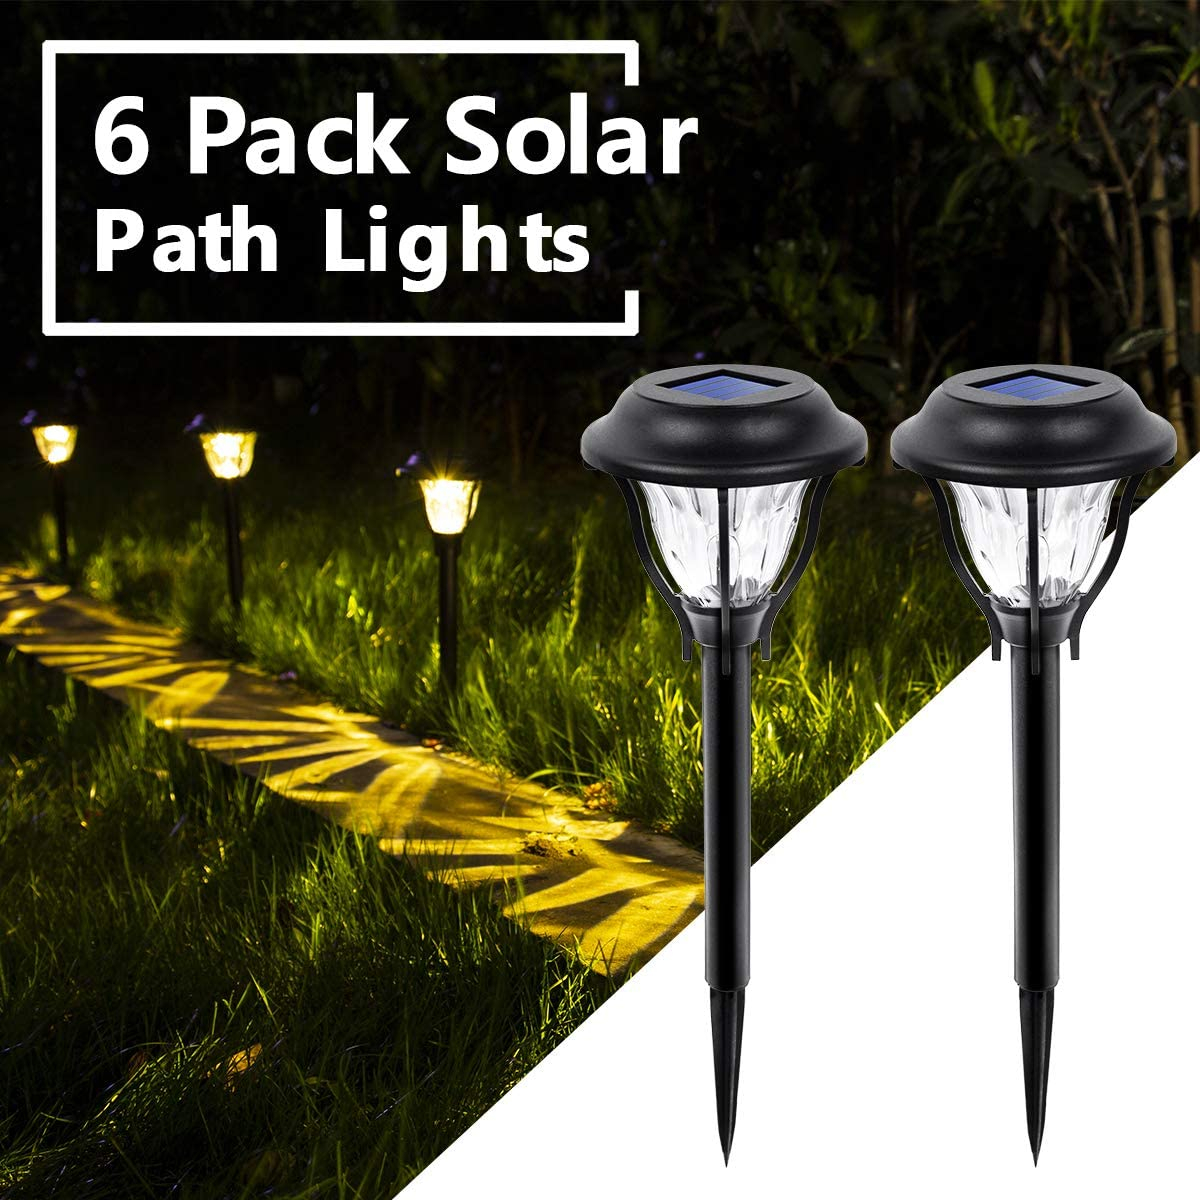 6 Pack LED Solar Pathway Lights SOLPEX Solar Path Lights Outdoor Walkway Warm White Patio Waterproof Solar Yard Lights for Yard Landscape